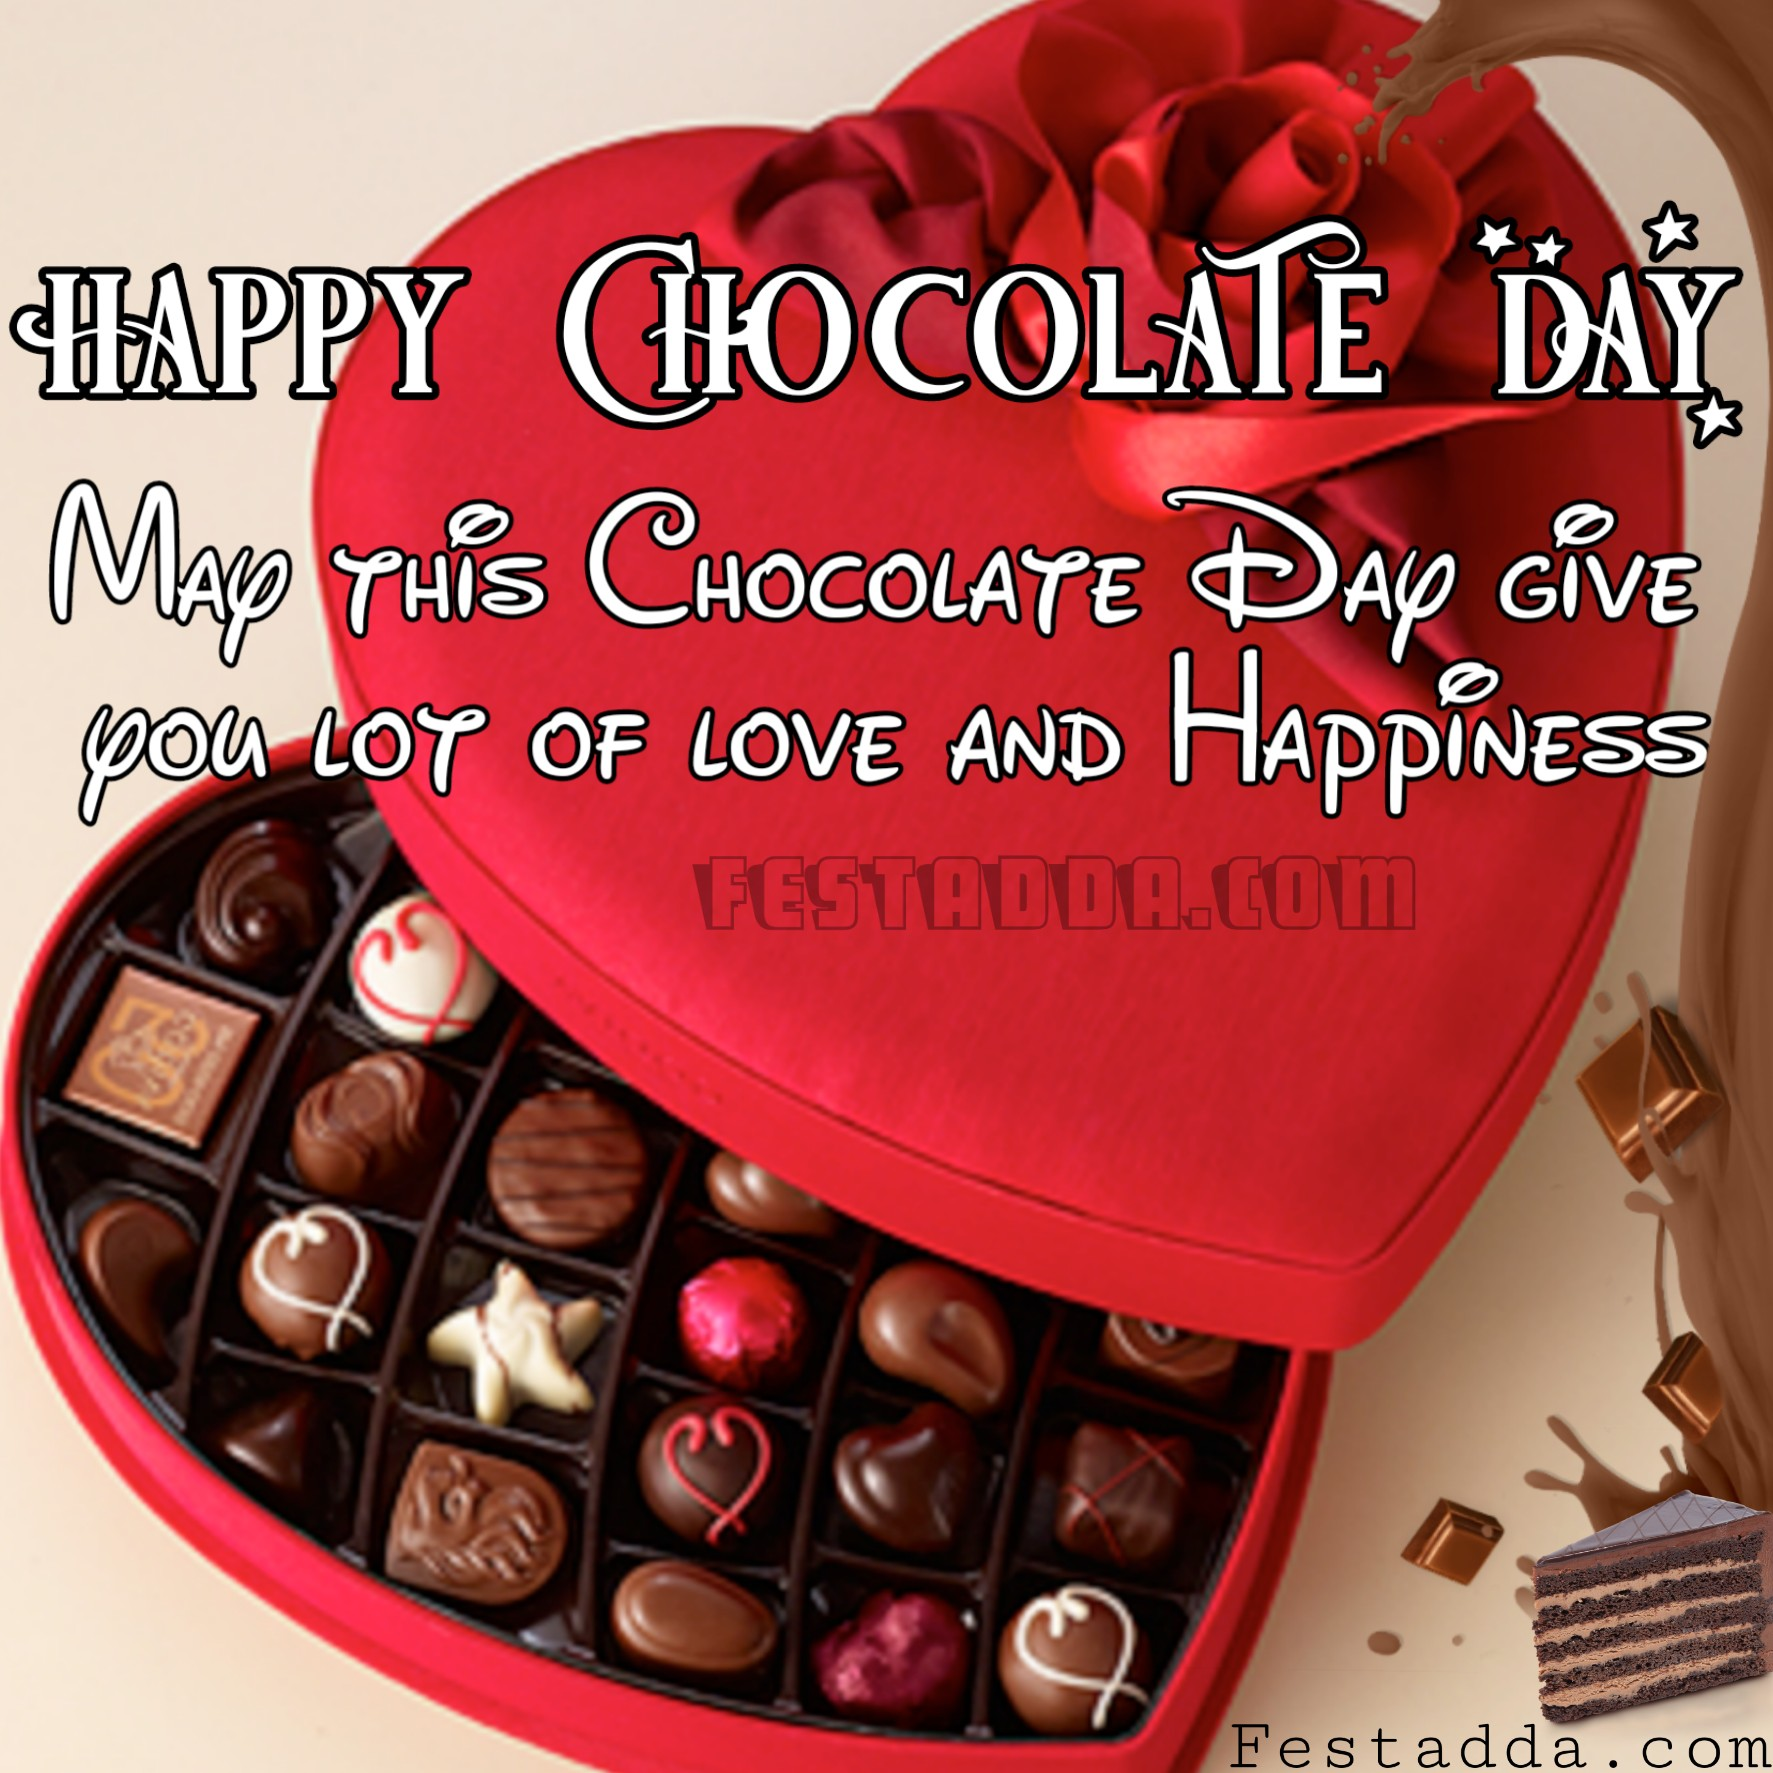 Happy Chocolate Day 2019 Images   Chocolate Day Images Download 1773x1773